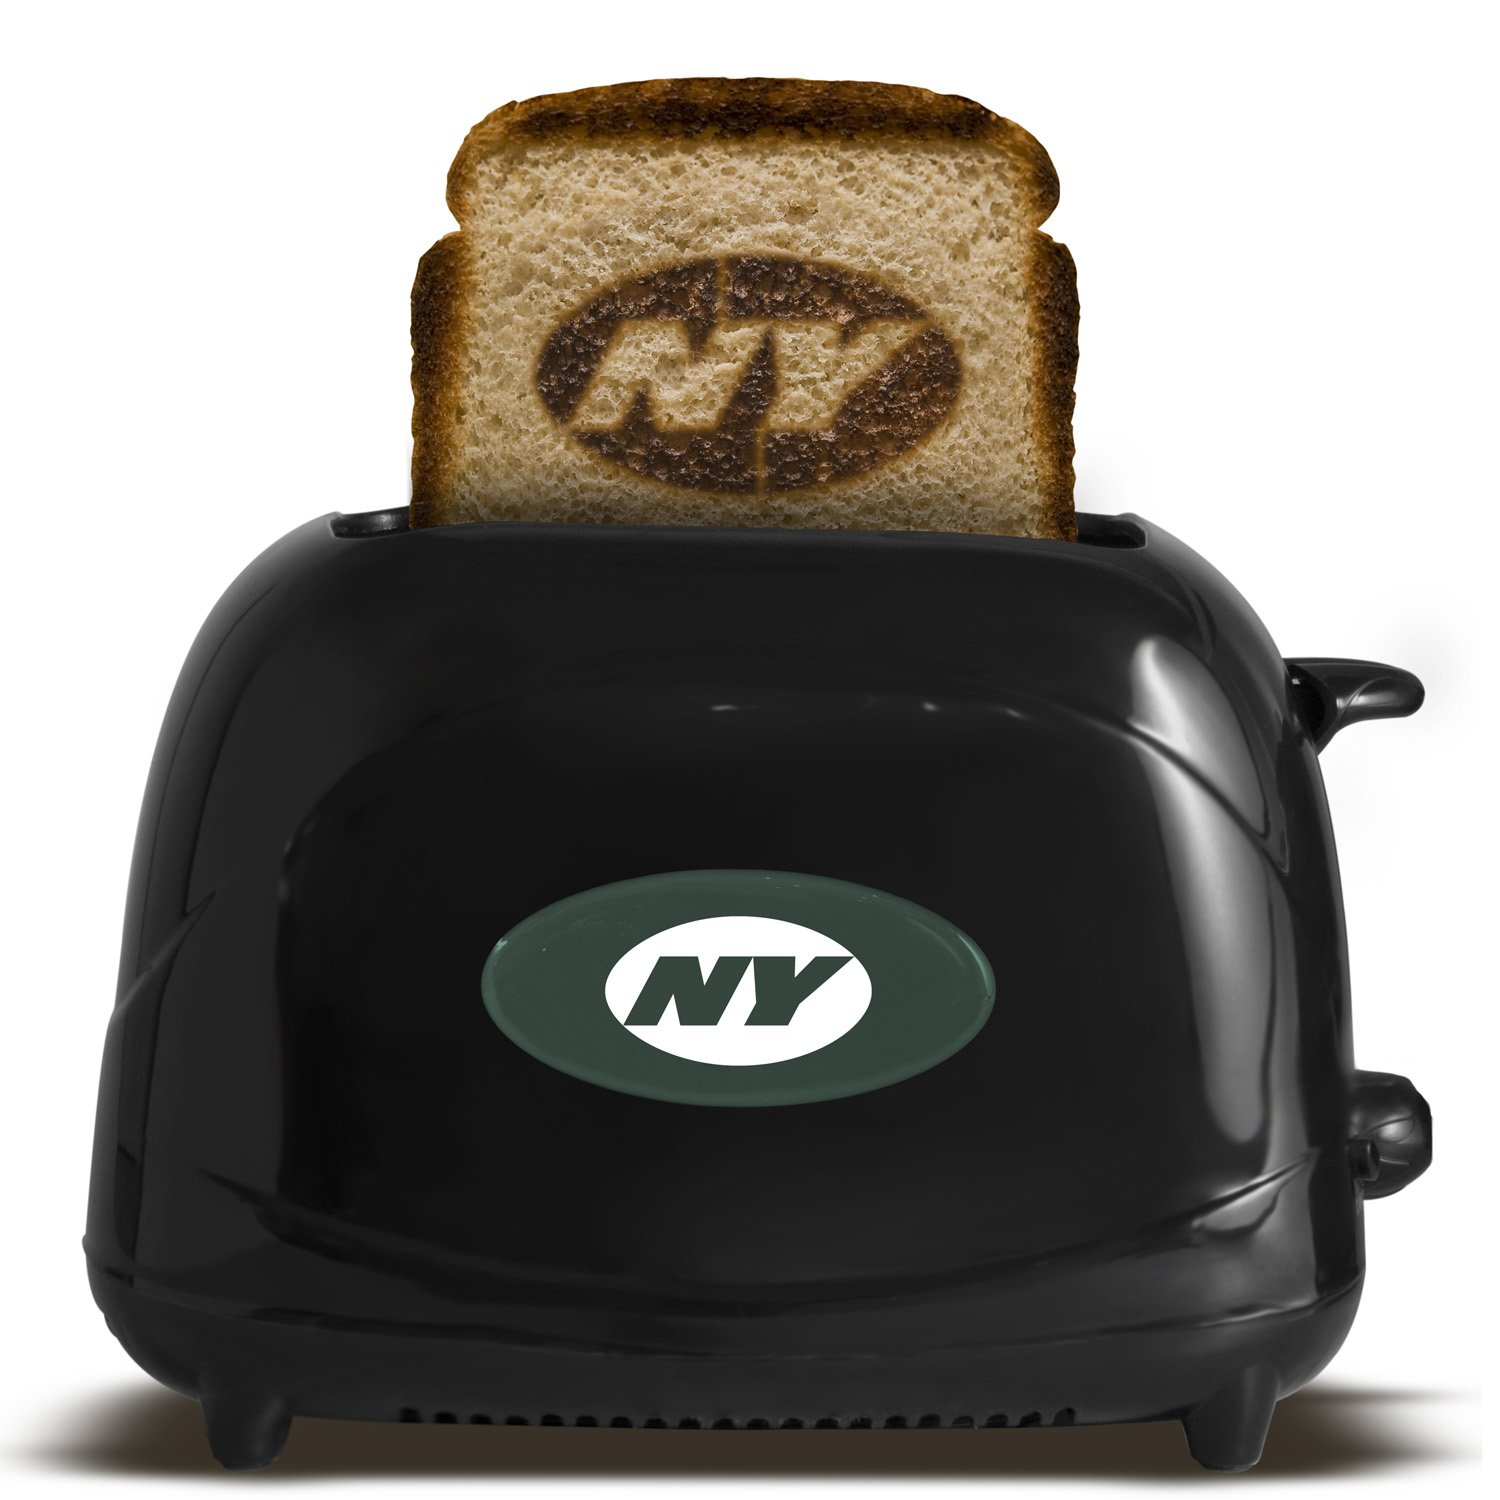 Pangea Brands NFL Black Toasters